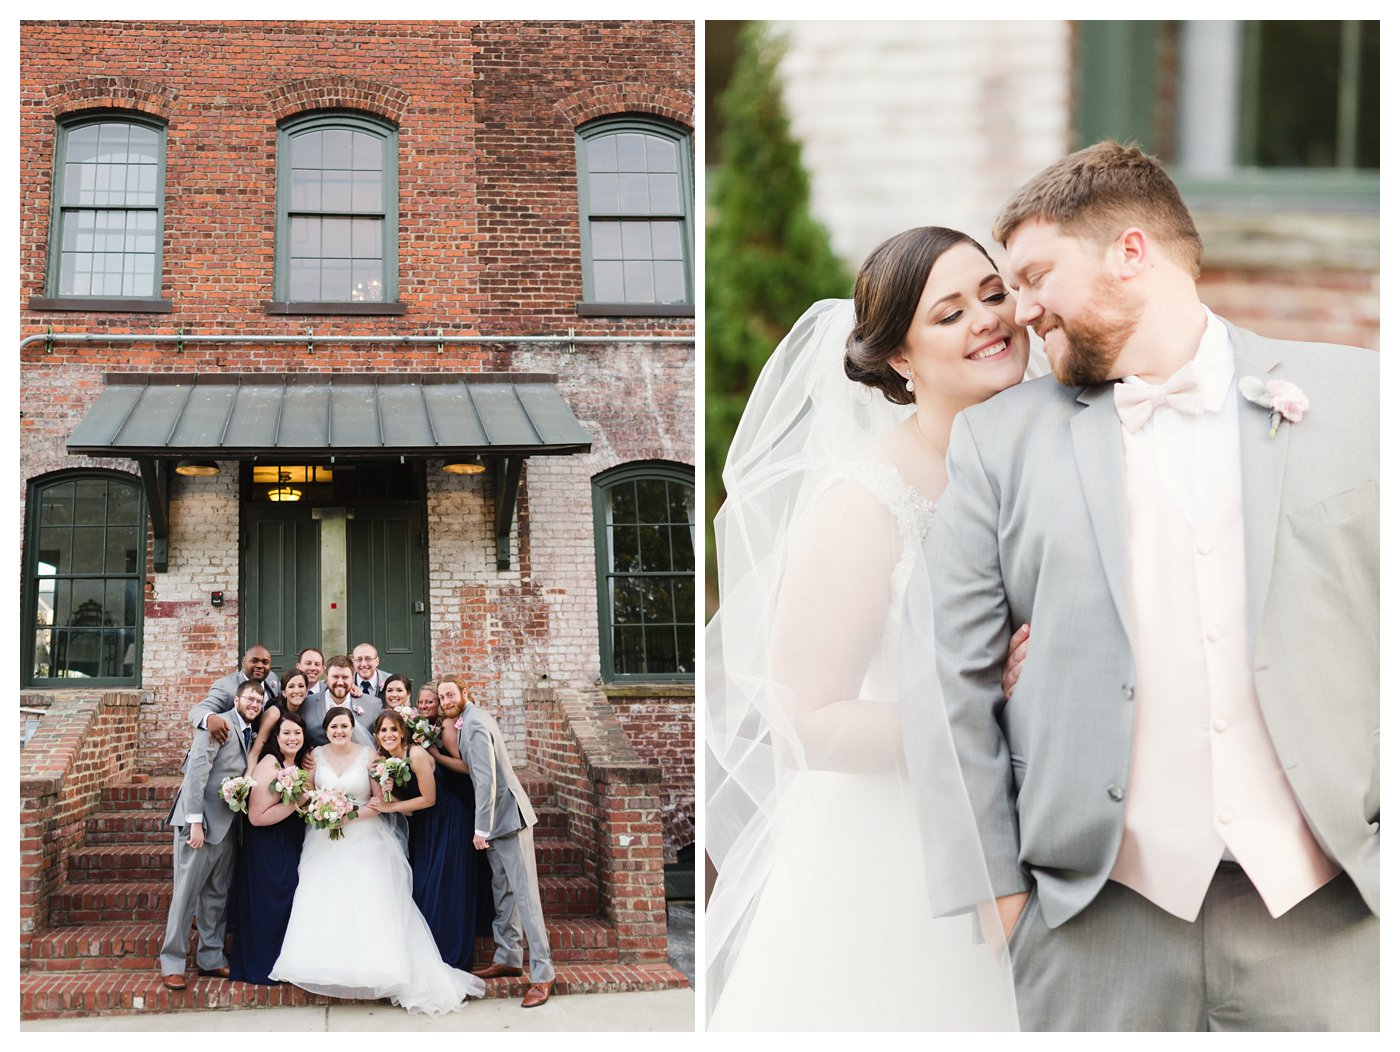 Industrial Downtown Raleigh NC Wedding by Amanda and Grady